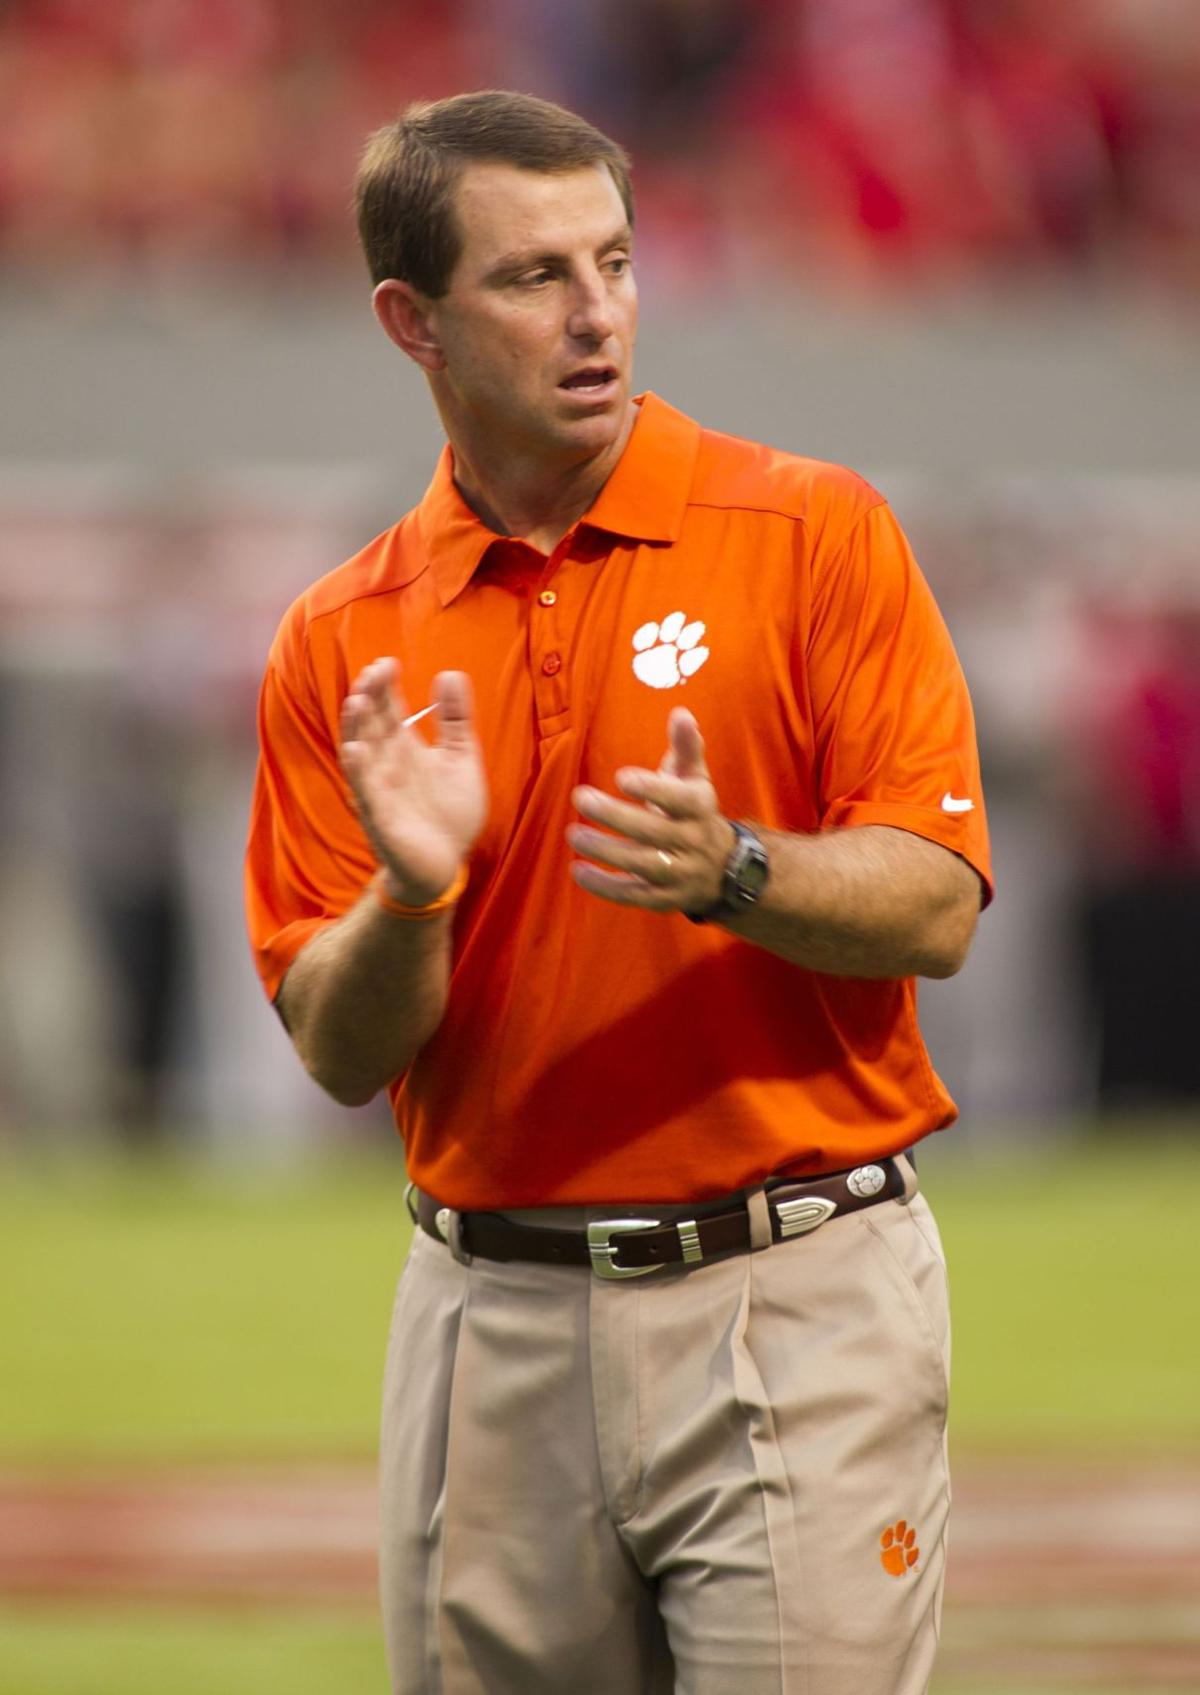 'Do the right thing' Clemson's message